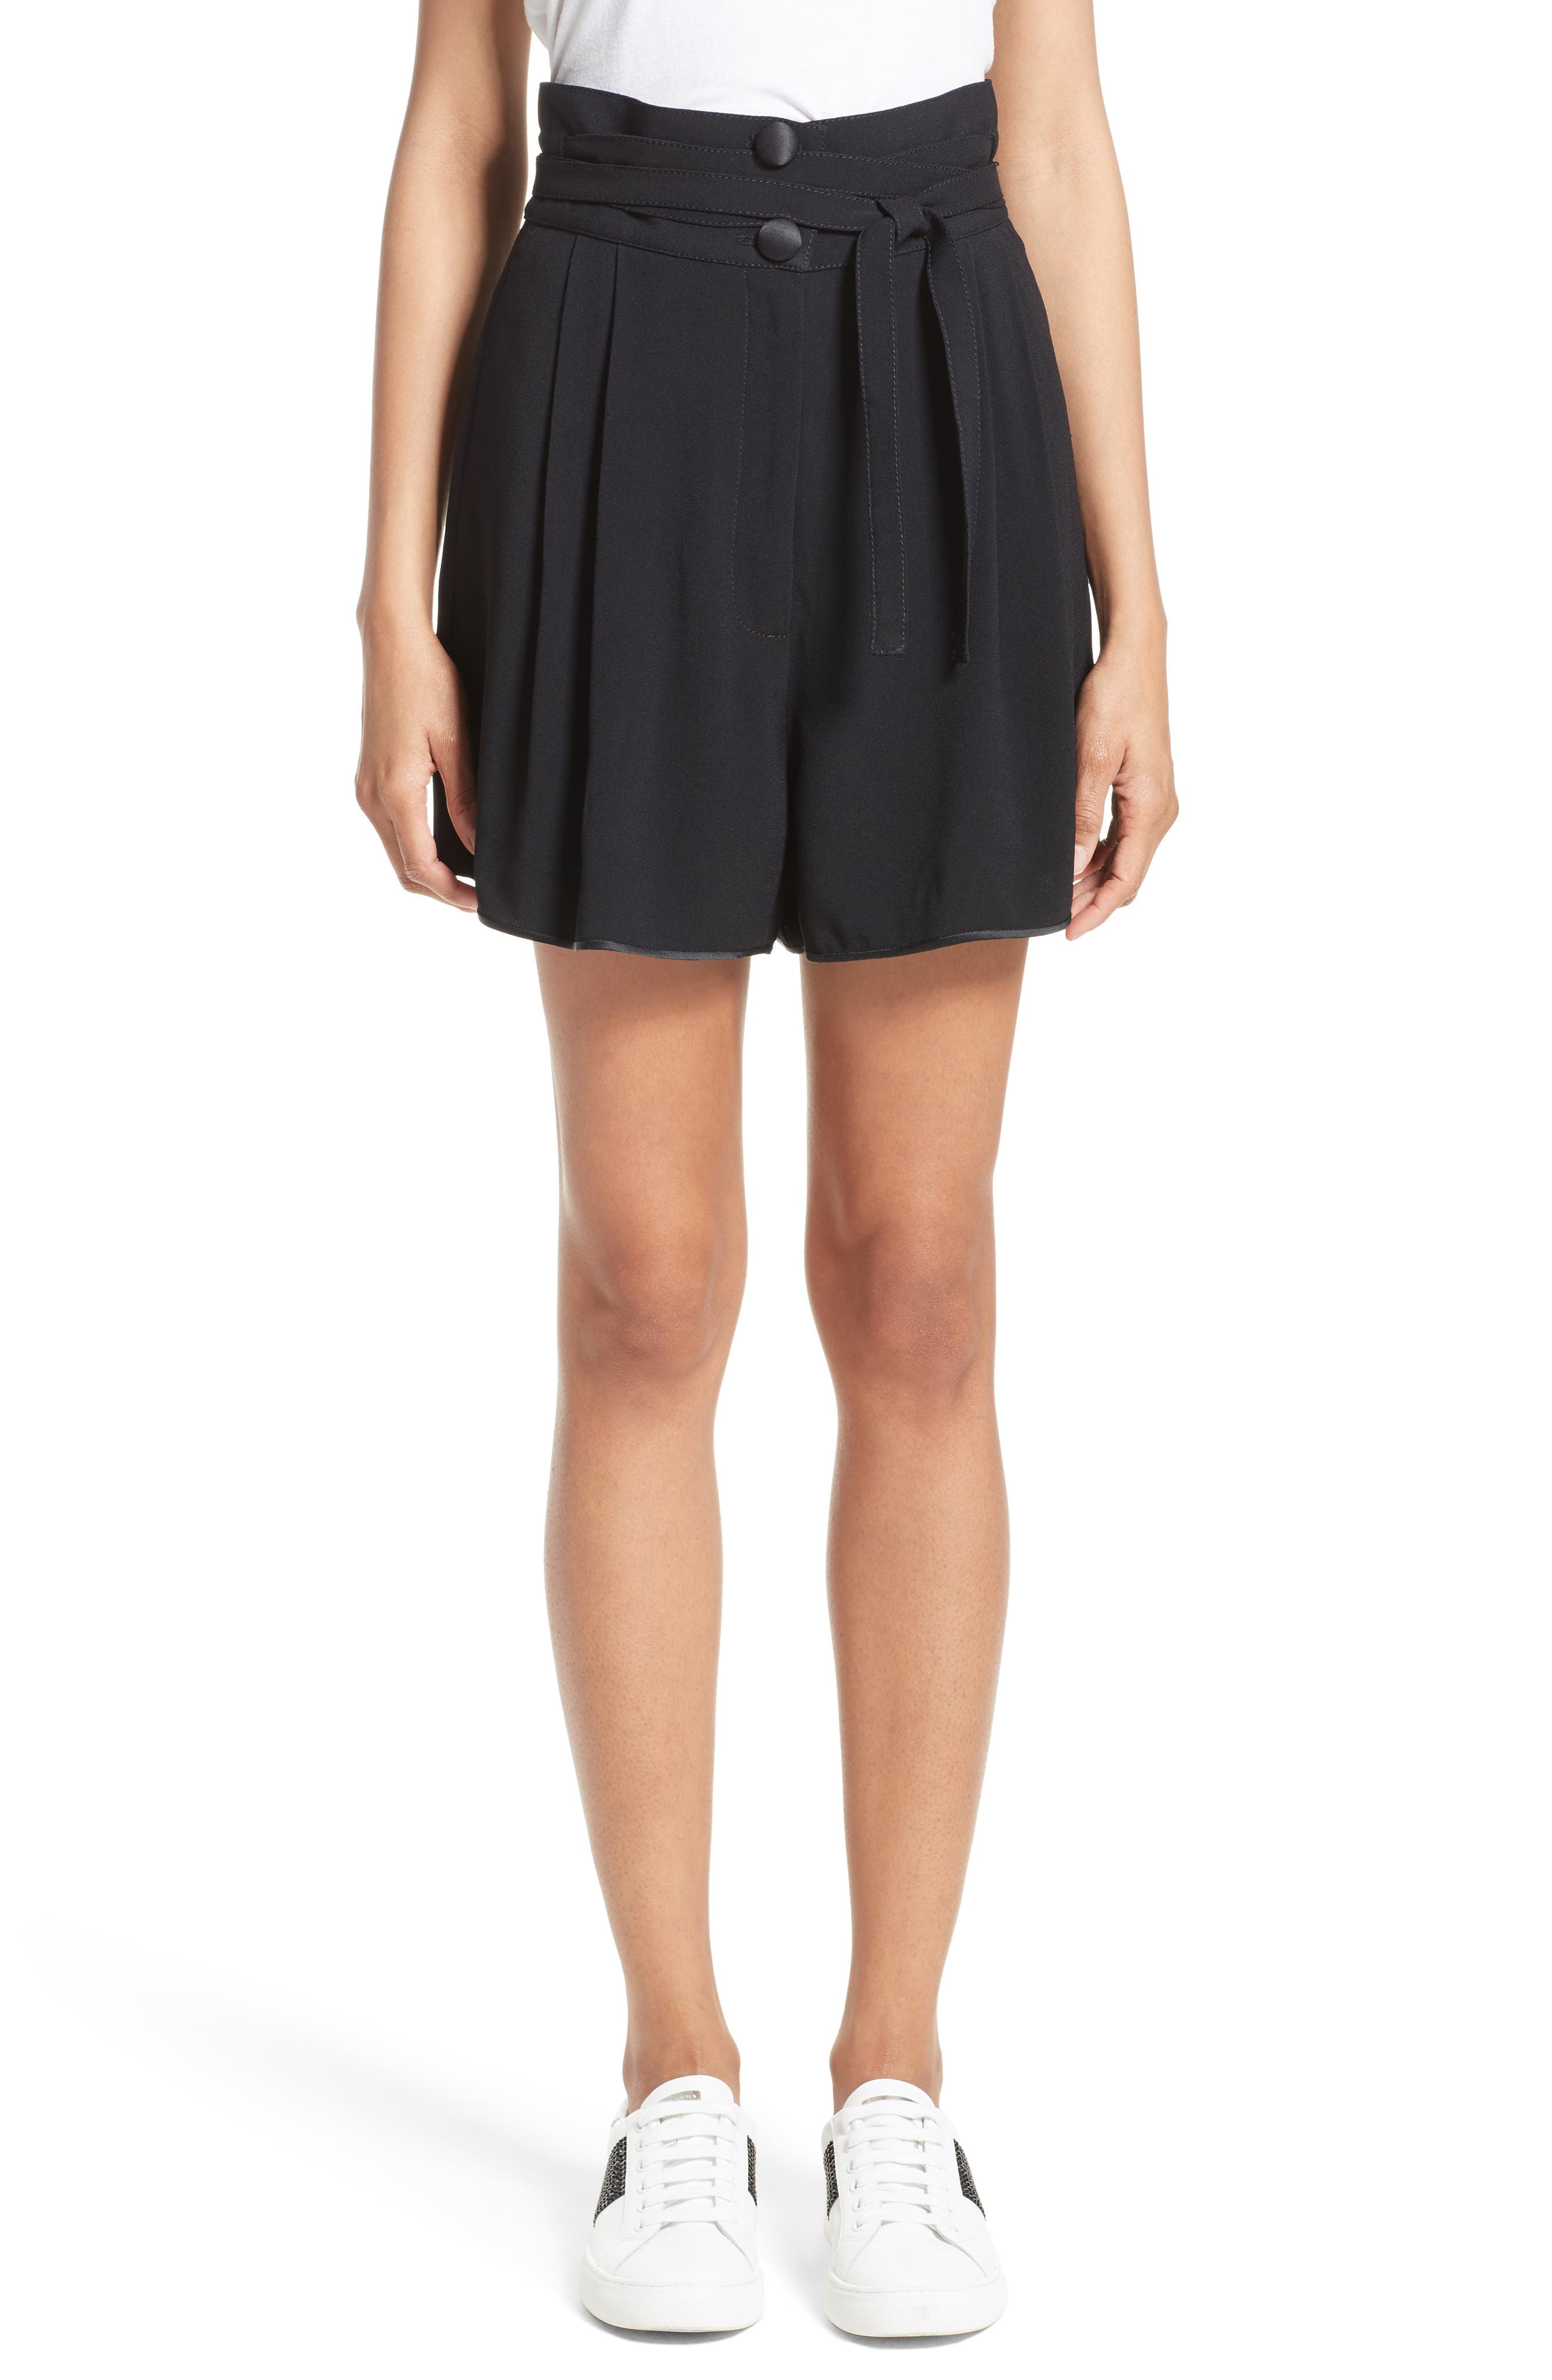 Alternate Image 1 Selected - MARC JACOBS Tie Waist Shorts